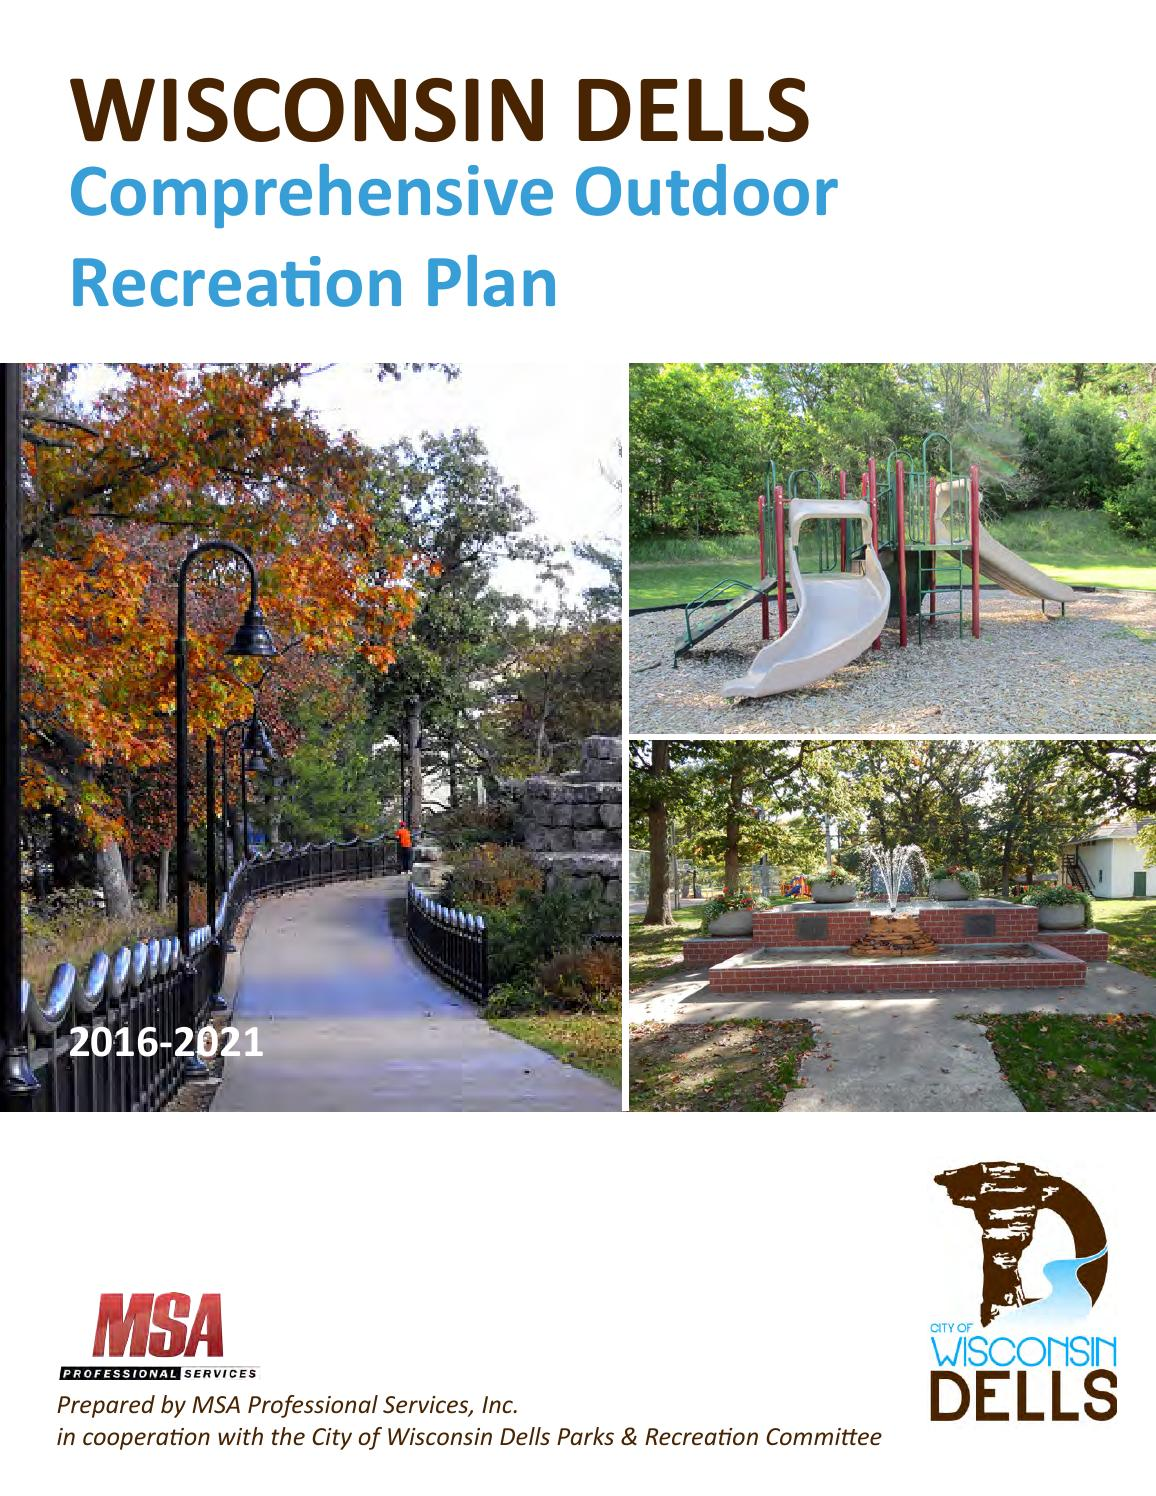 City Of Wisconsin Dells Comprehensive Outdoor Recreation Plan By